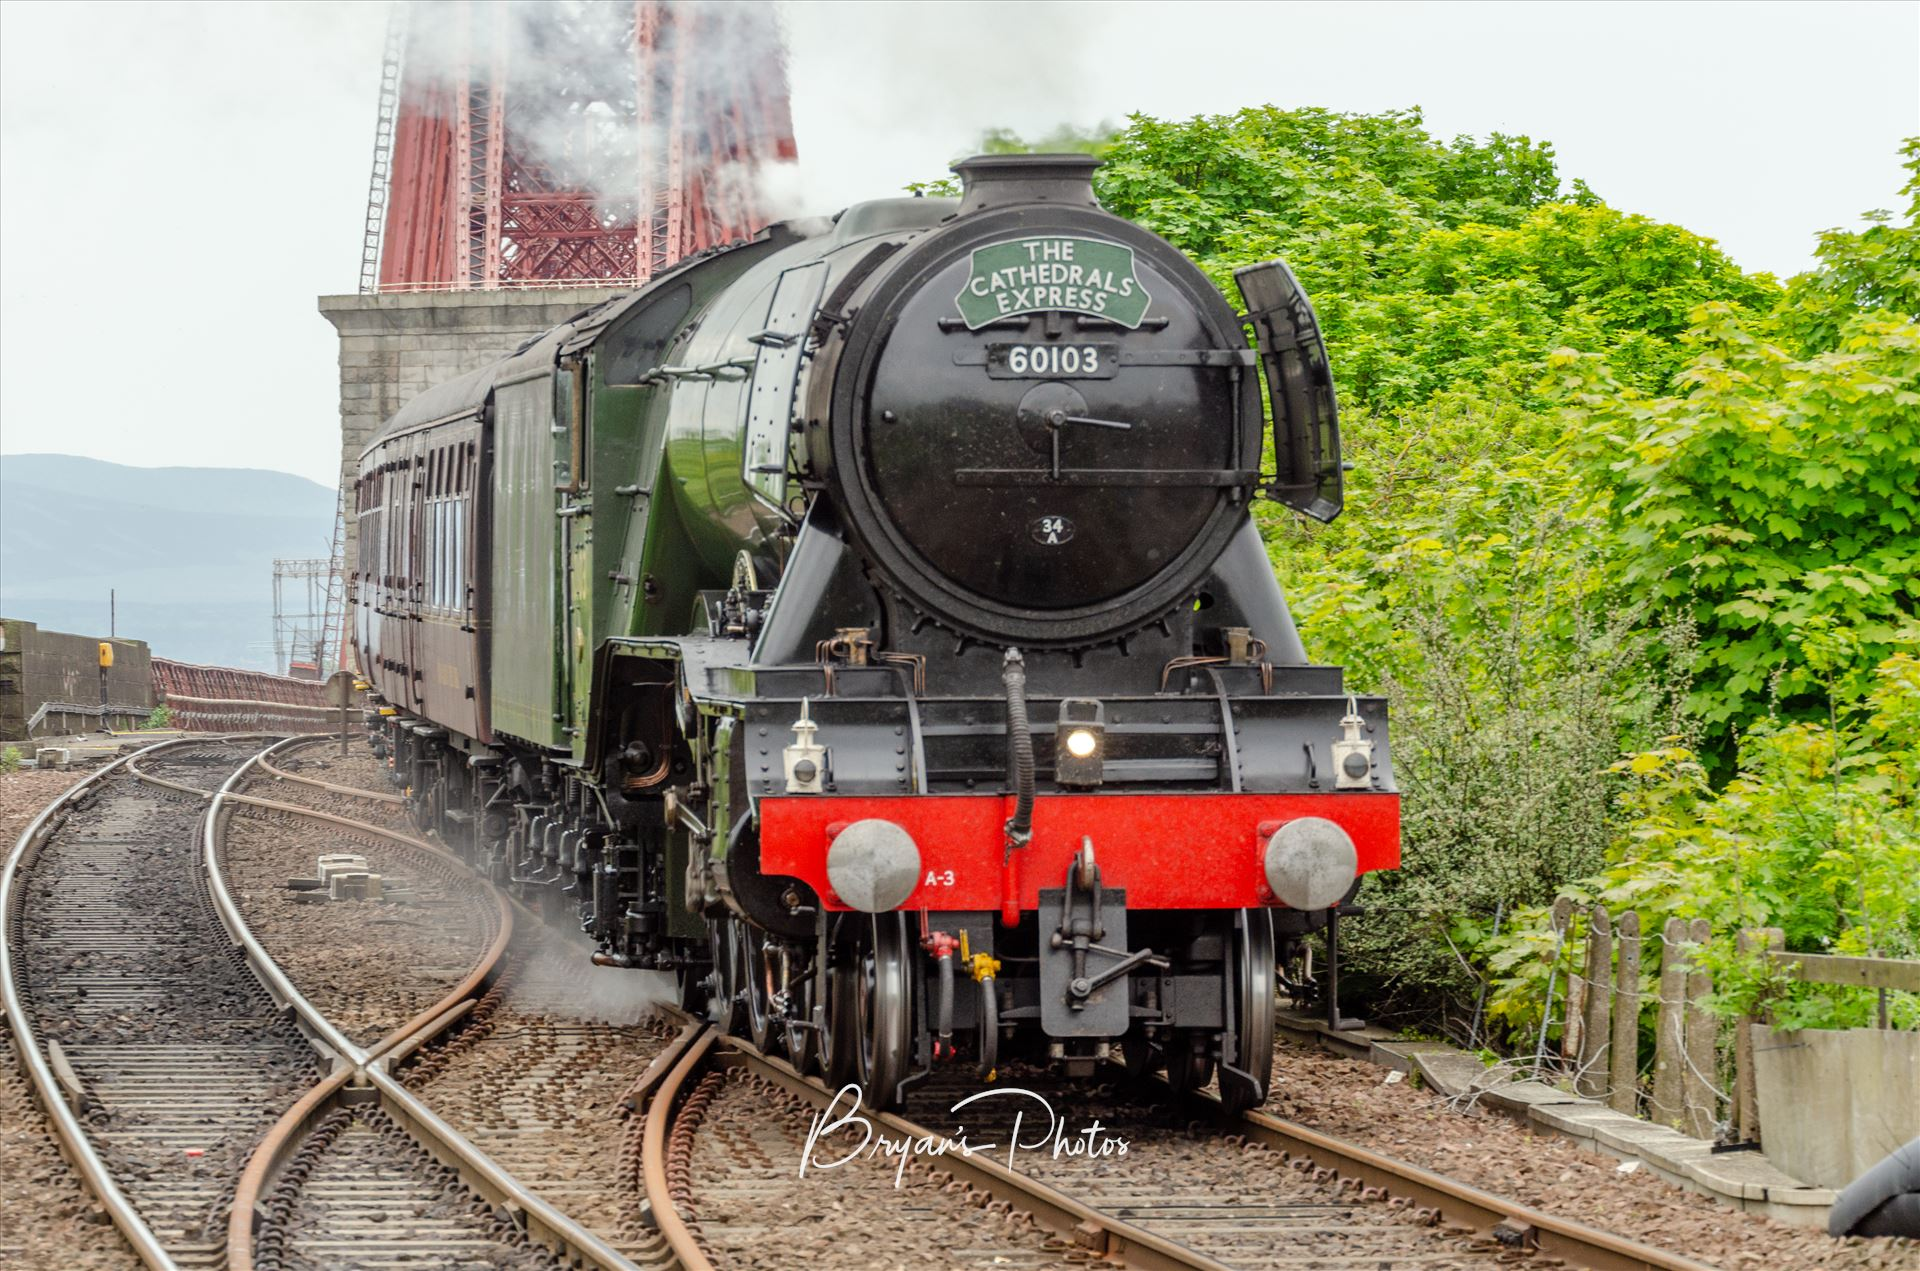 The Scotsman and the Bridge A photograph of the iconic Flying Scotsman steam engine as it approaches North Queensferry station with the Forth Rail Bridge in the background. by Bryans Photos